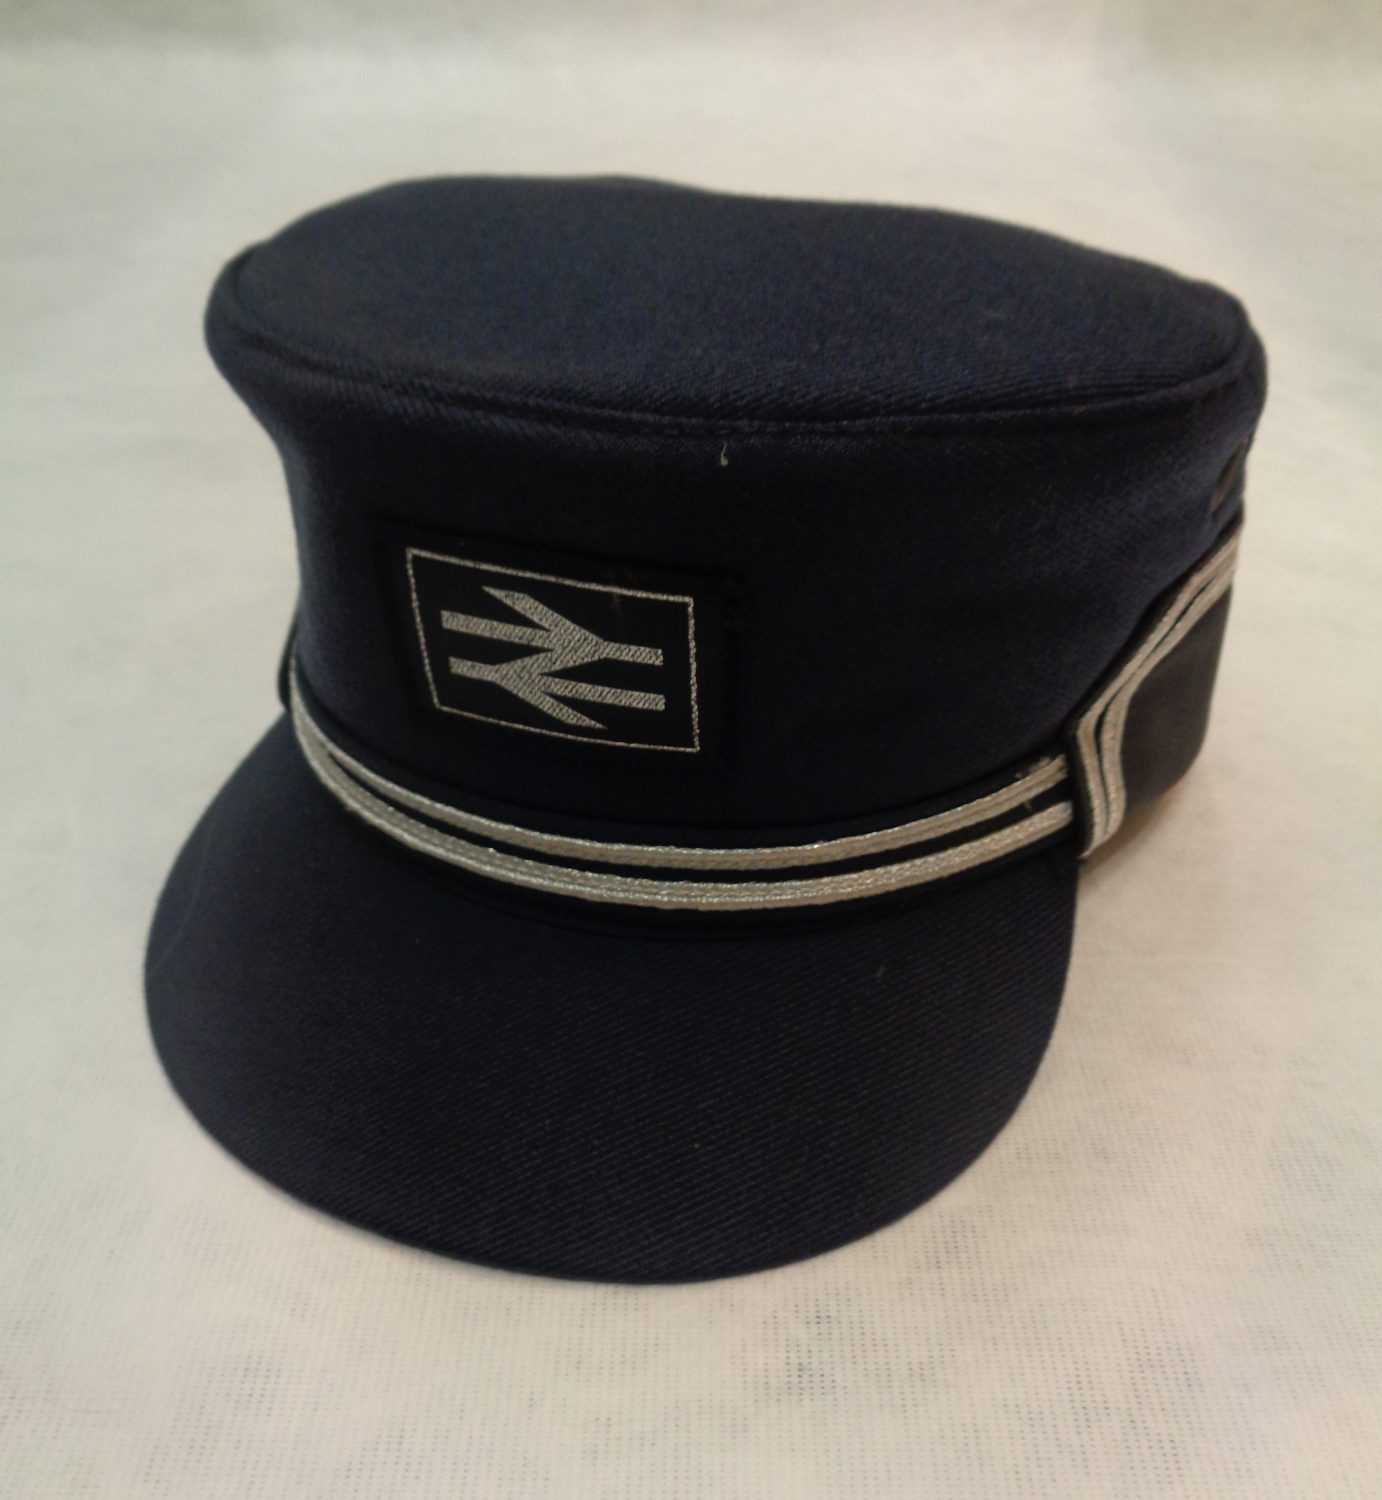 Box structured cap in navy with two silver bands and the new British railways logo on the front also in silver.